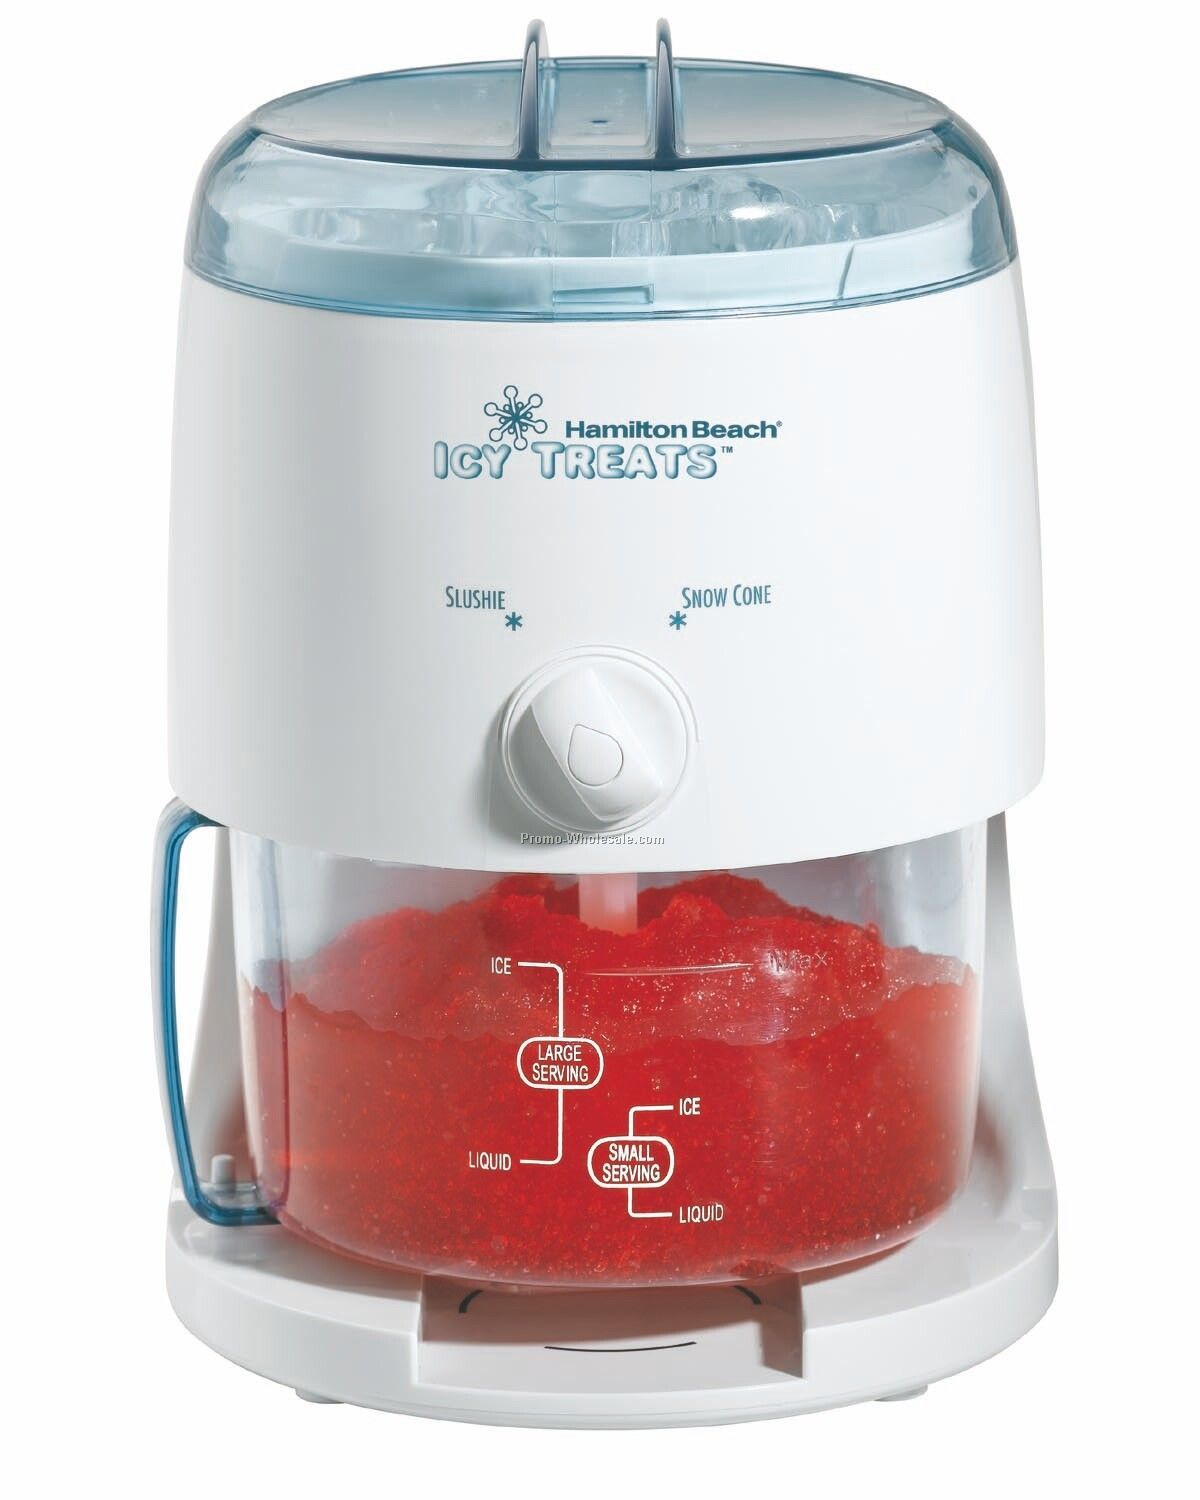 Hamilton Beach Icy Treats Ice Shaver